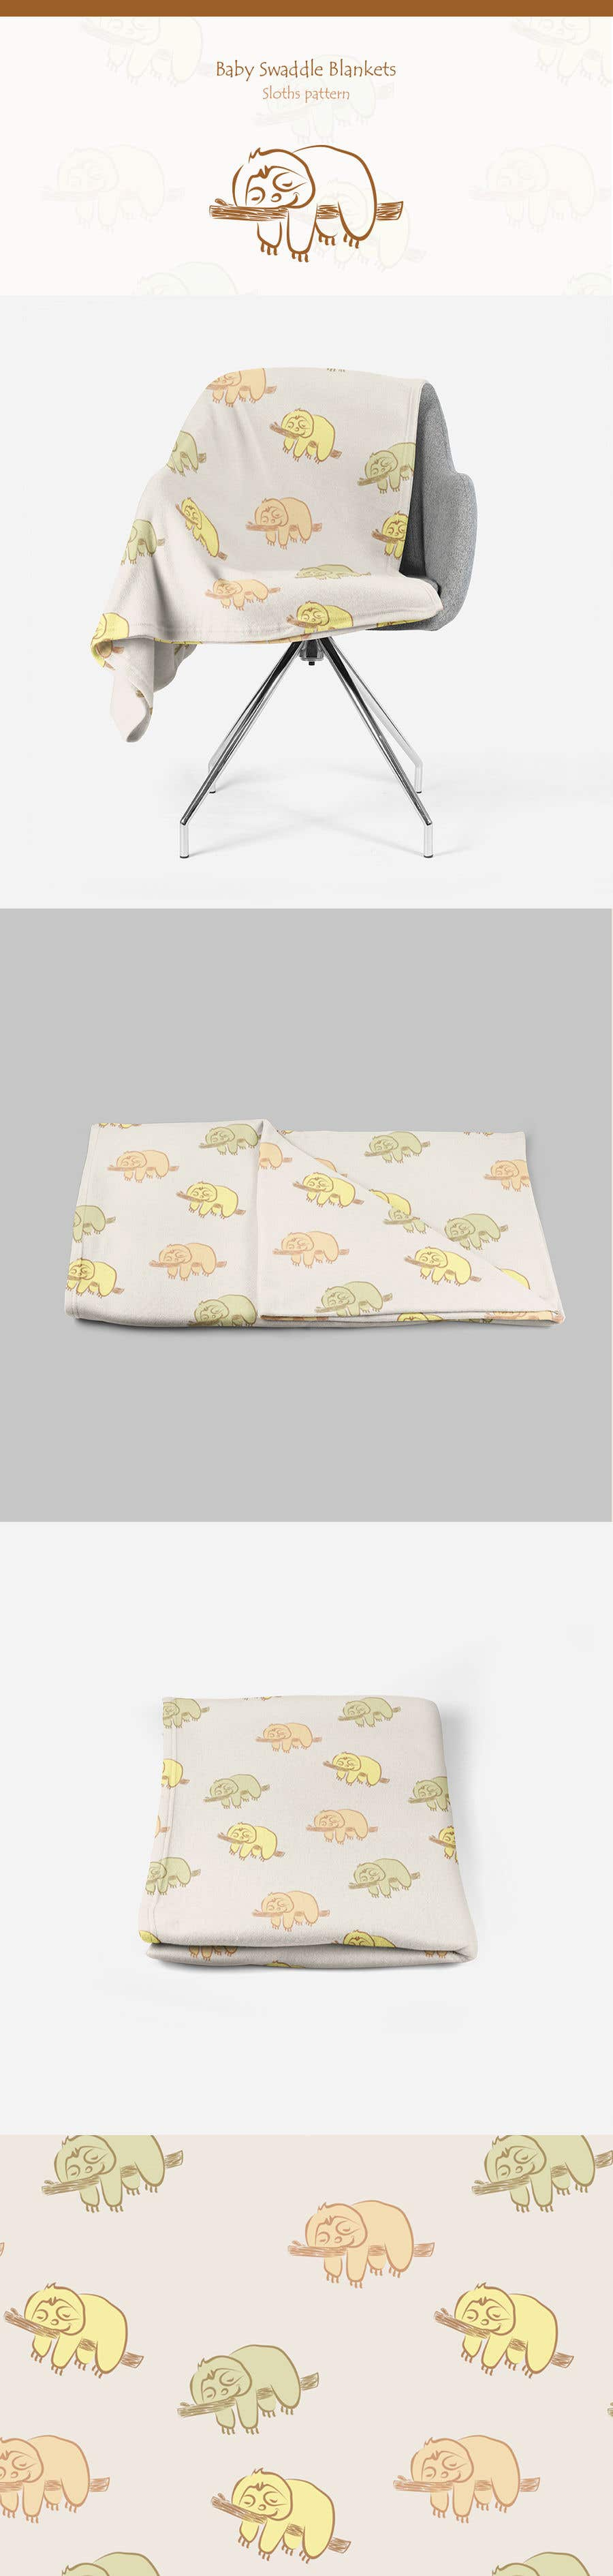 Proposition n°130 du concours Design 3 Baby Swaddle Blankets